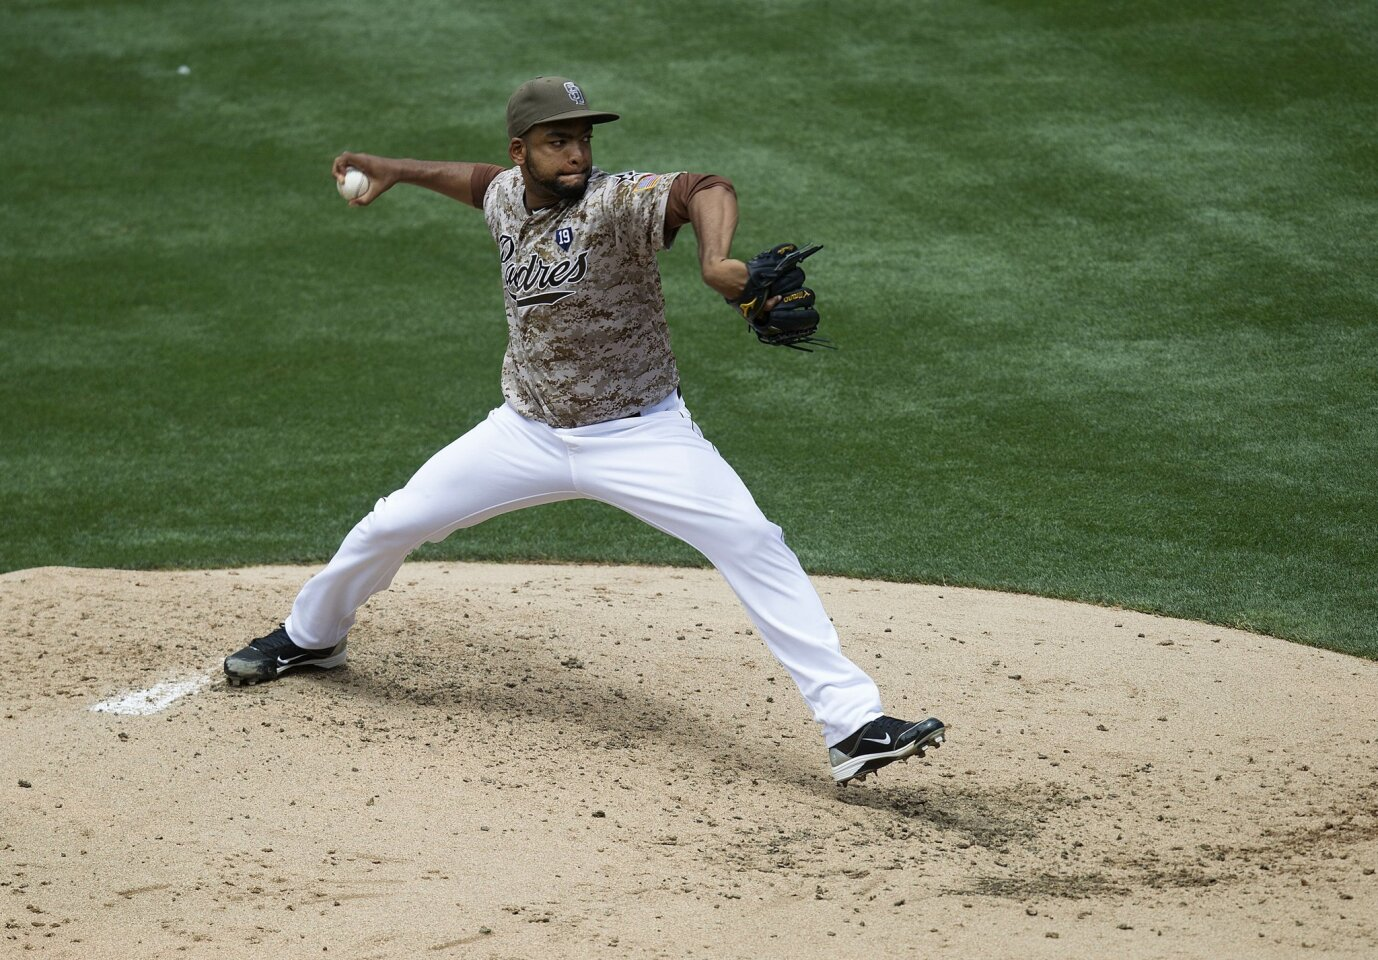 Padres beat the Diamondbacks 2-1. San Diego newly acquired starting pitcher Odrisamer Despaigne on the mound.